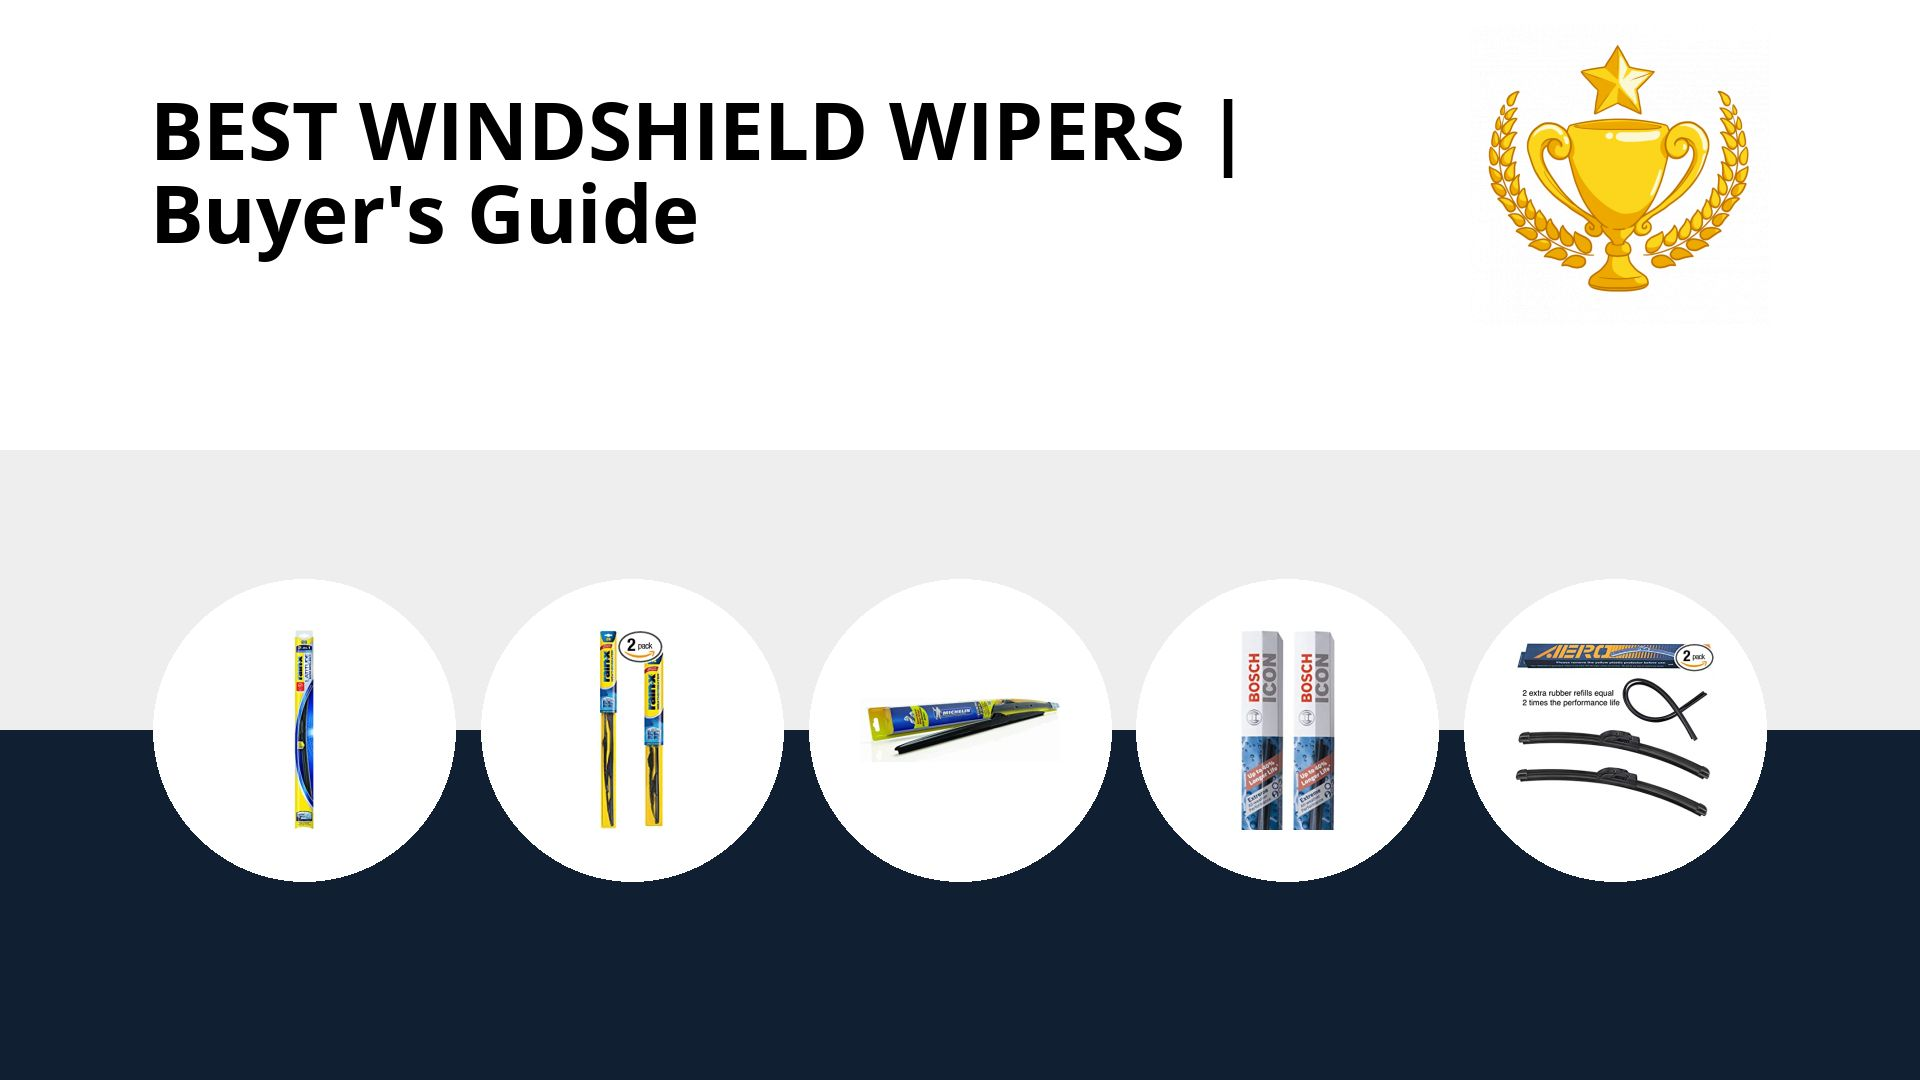 Best Windshield Wipers: image